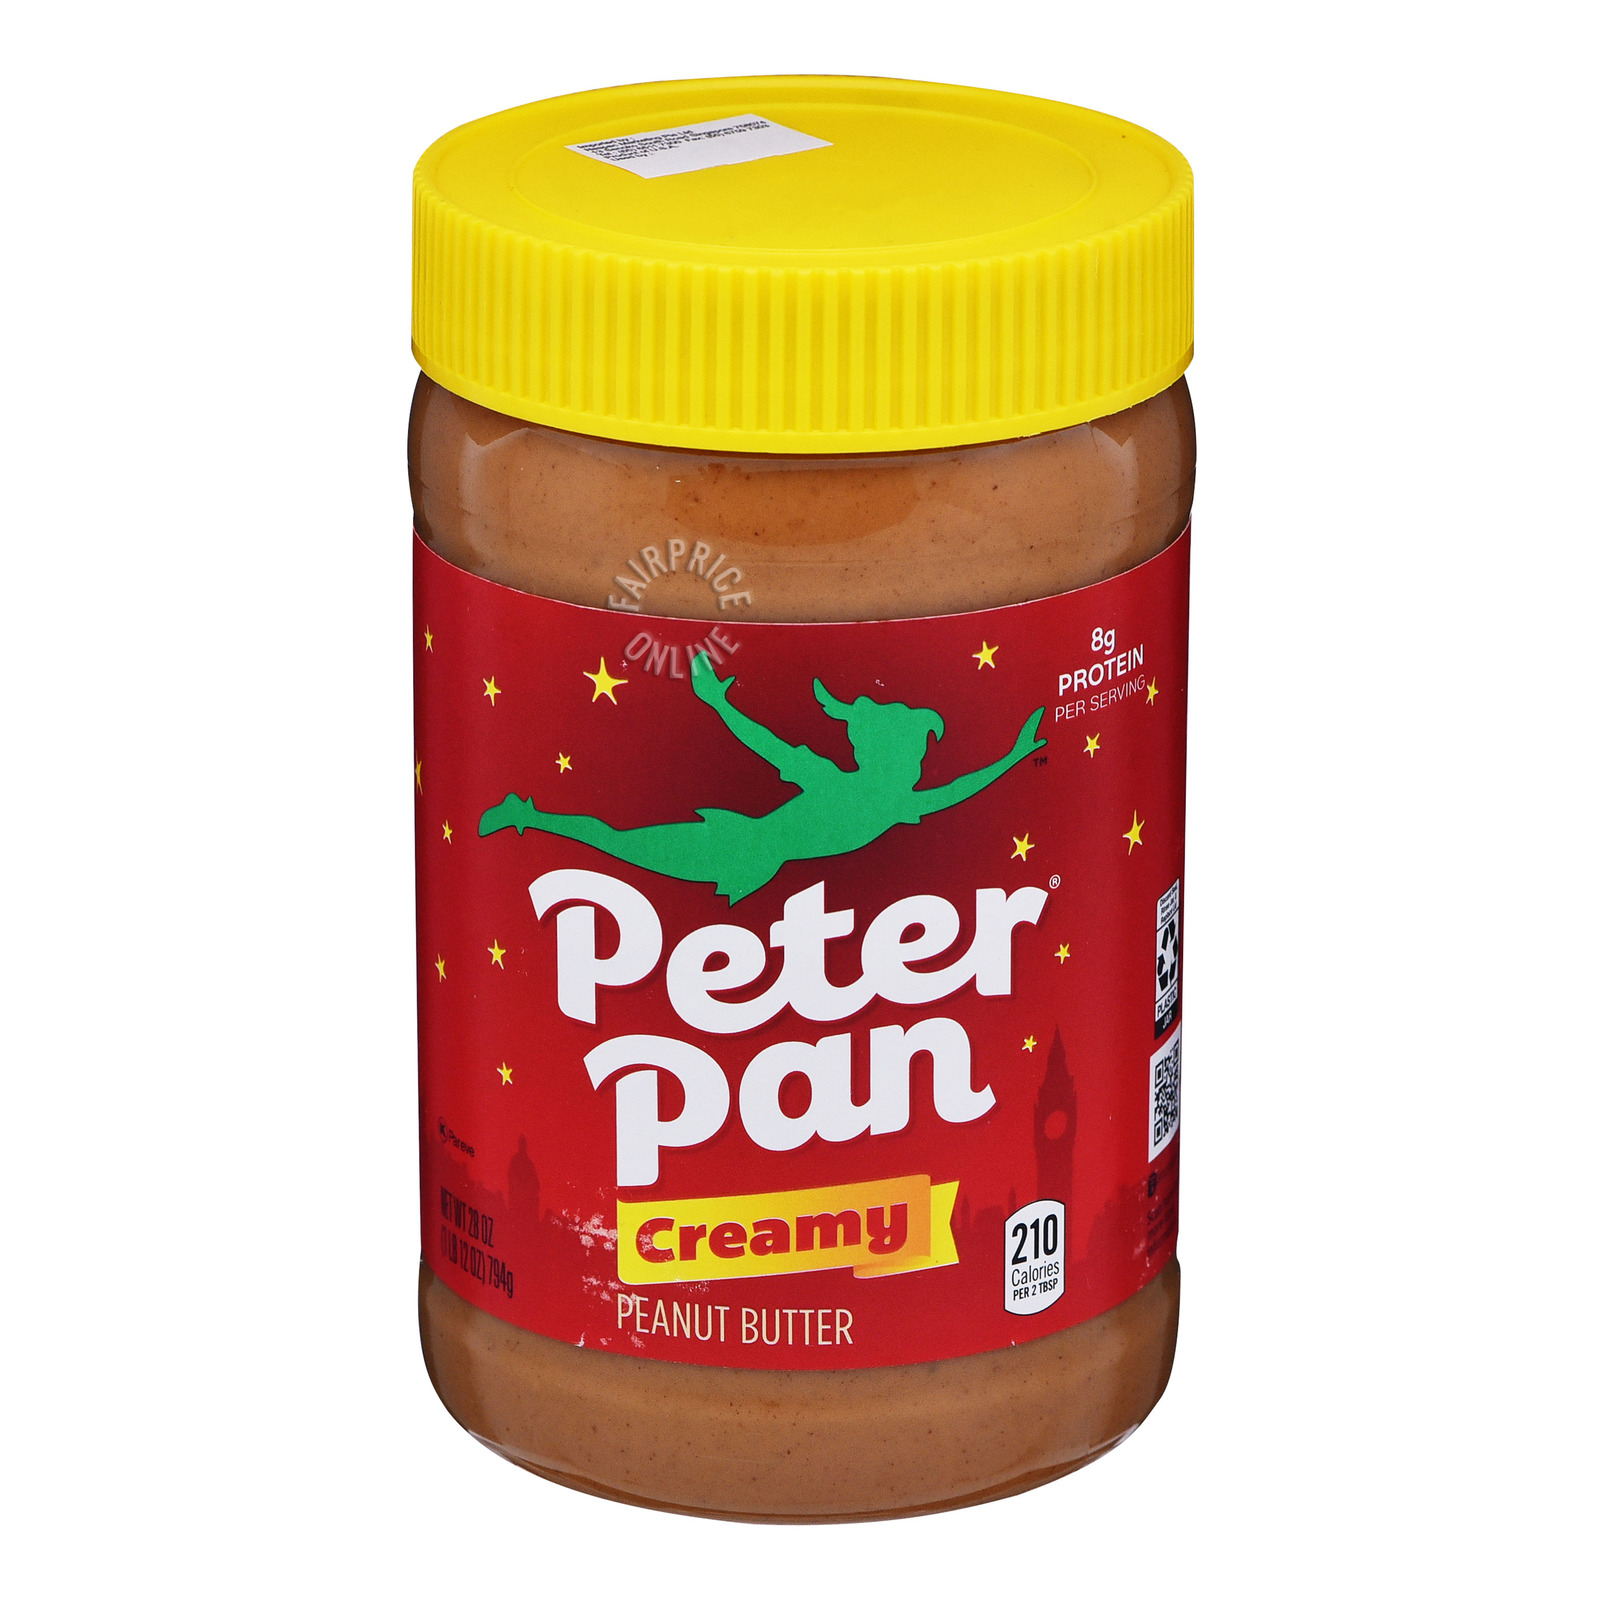 Peter Pan Creamy Peanut Butter - Regular